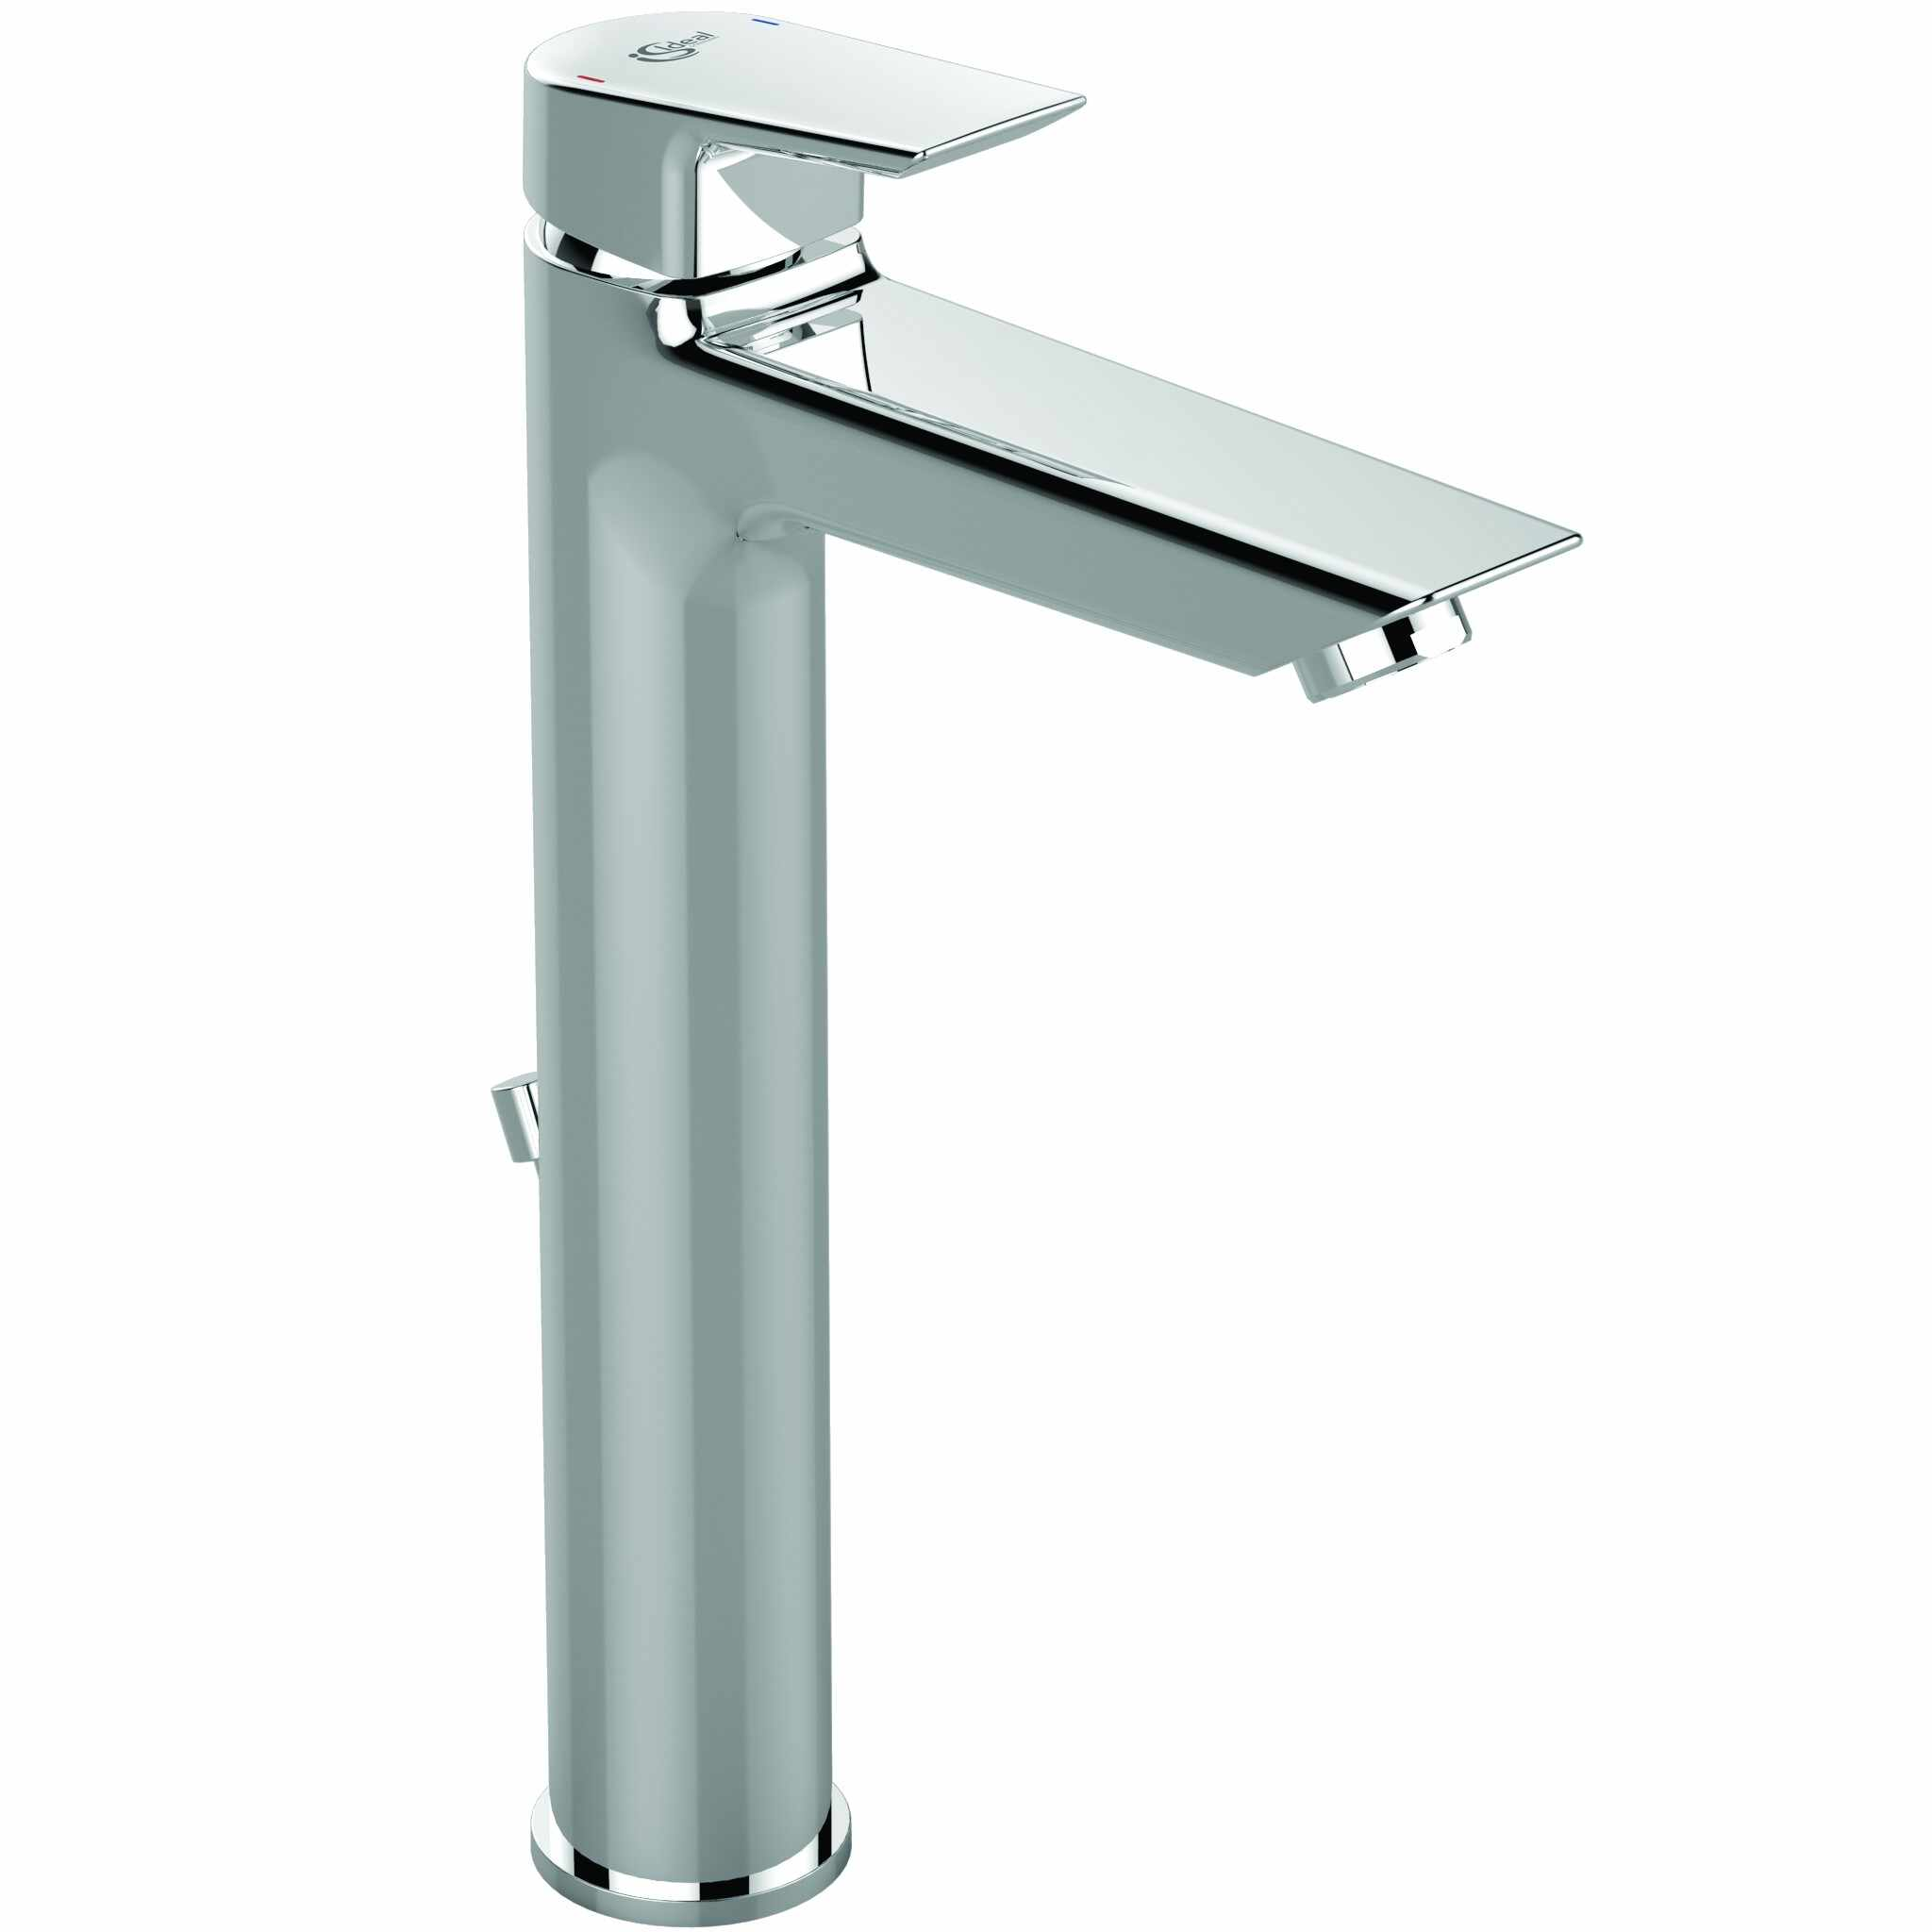 Baterie lavoar Ideal Standard Tesi 301 mm ventil pop-up pentru lavoar tip bol